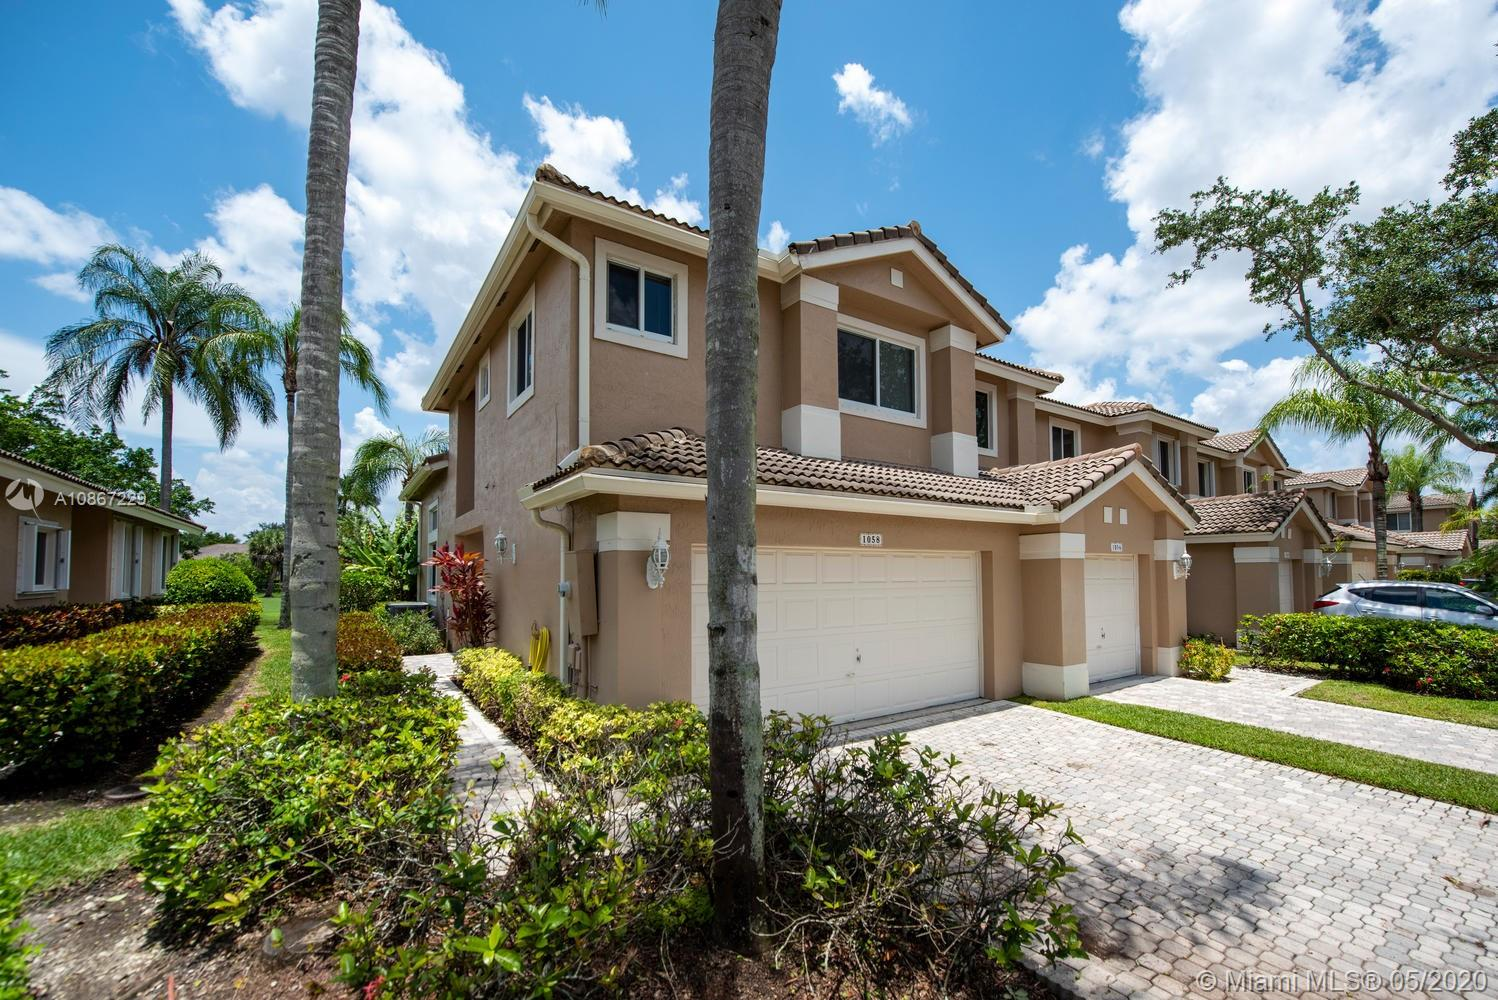 THIS RARELY AVAILABLE CORNER UNIT BOASTS PLENTY OF NATURAL LIGHT, FRESHLY PAINTED INTERIOR, NEW CARPET UPSTAIRS, PROFESSIONALLY STEAMED, NEUTRAL TILE DOWNSTAIRS. STAINLESS STEEL APPLIANCES, CONTEMPORARY LIGHTING AND PLUMBING FIXTURES. BEAUTIFULLY REMODELED MODERN MASTER BATHROOM.  HUGE LIVING AREAS AND A BEAUTIFUL VIEW OF THE GOLF COURSE FROM THE PATIO.  